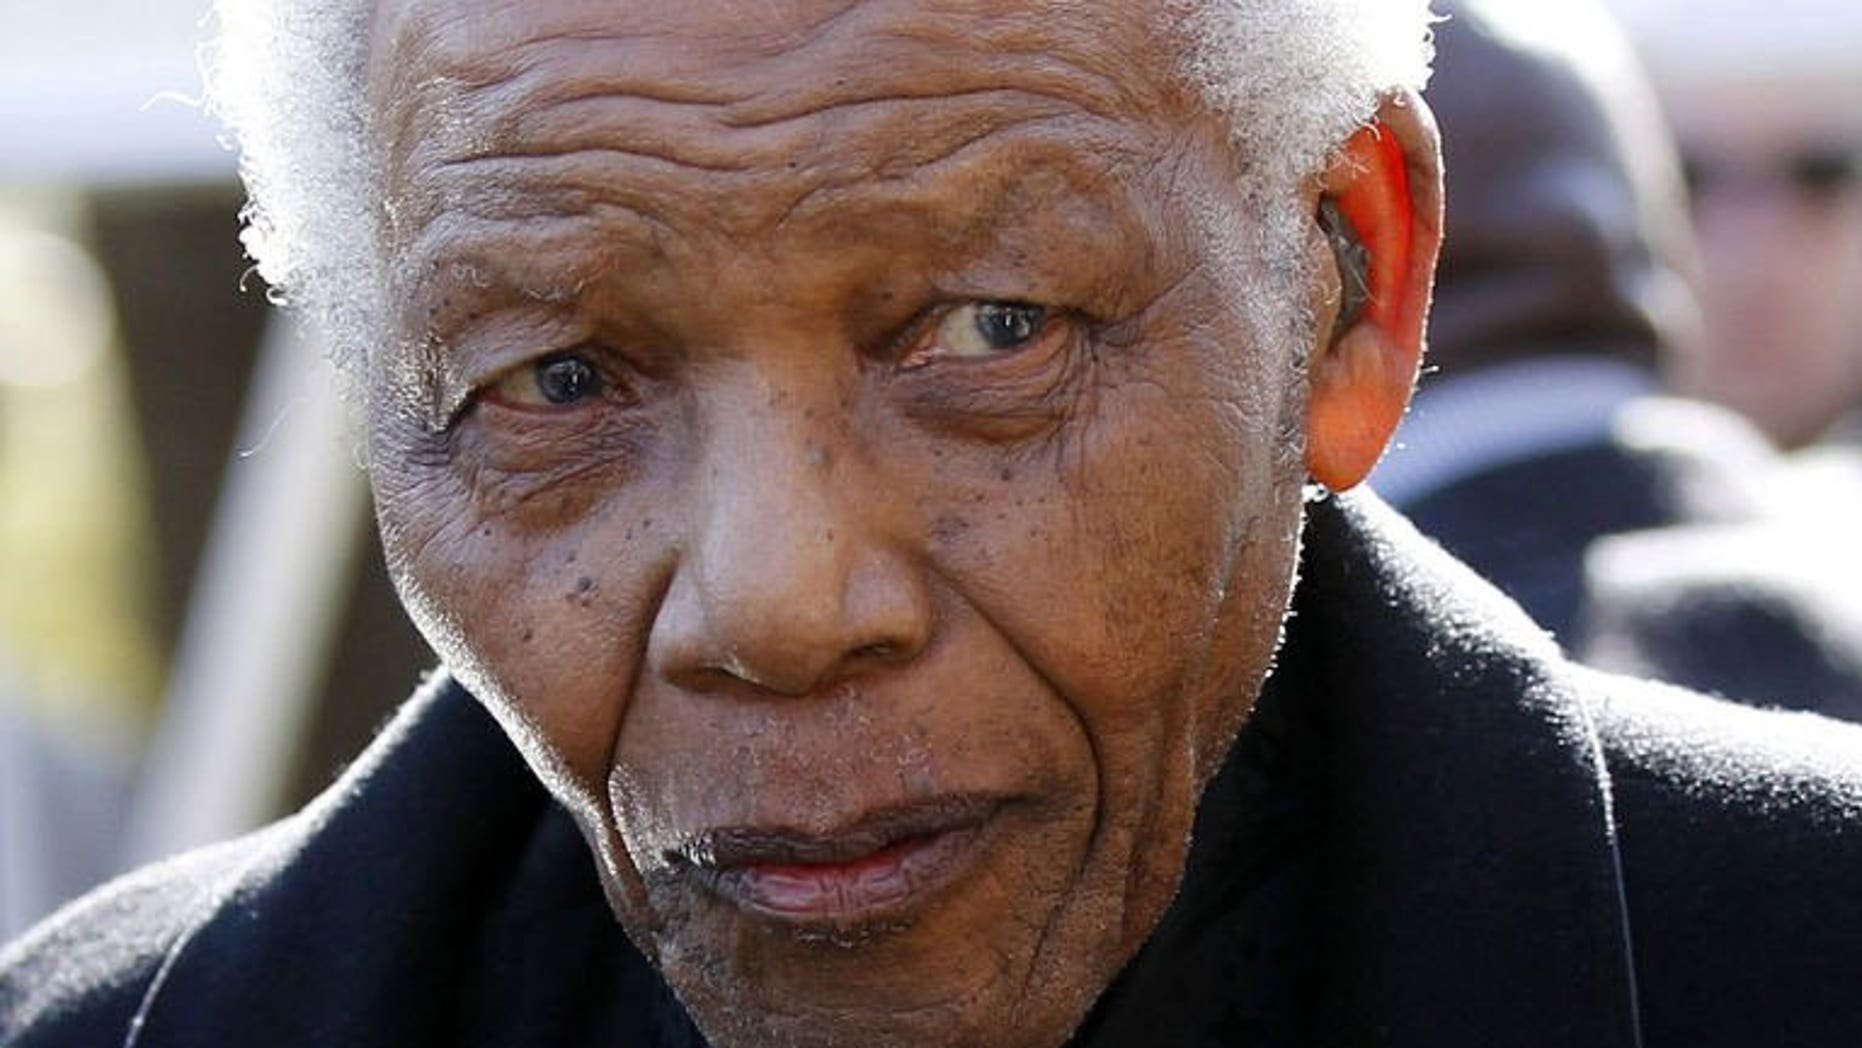 Former South African President Nelson Mandela is pictured in Sandton, north of Johannesburg, on June 17, 2010. South Africa's main opposition Democratic Alliance party has demanded a formal investigation into the breakdown of an ambulance carrying Mandela to hospital earlier this month.